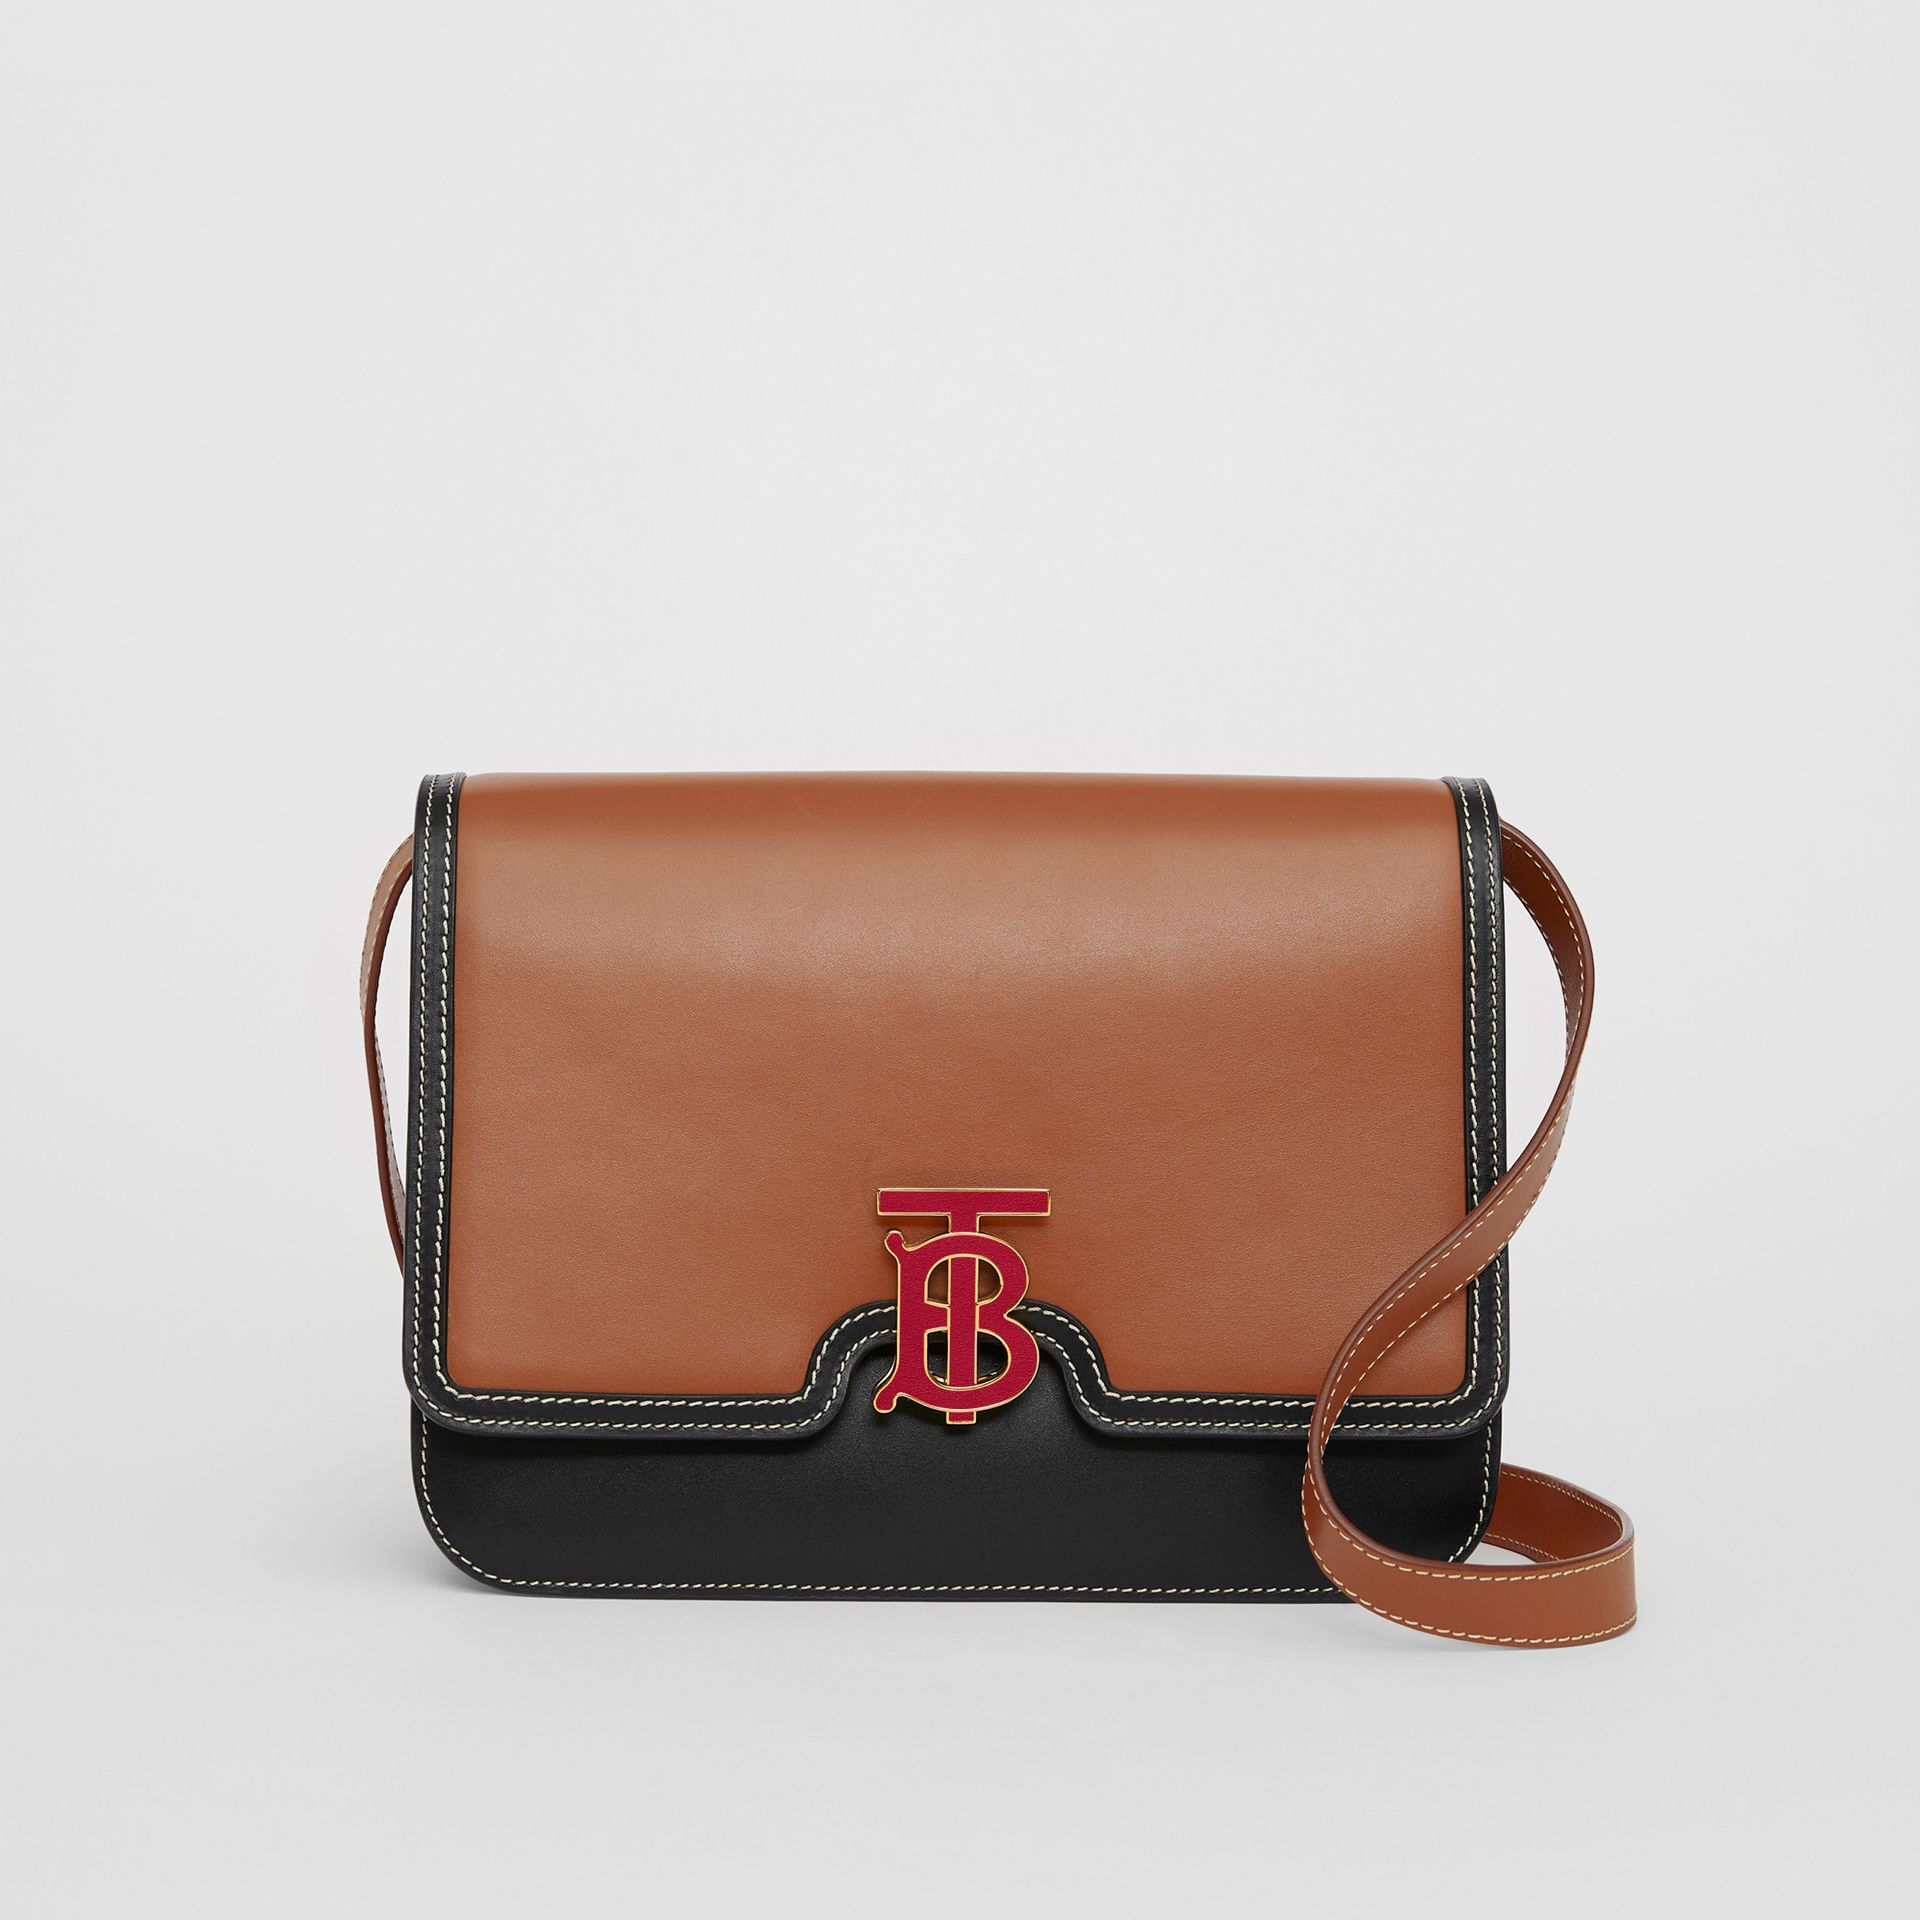 Medium Two-tone Leather TB Bag in Malt Brown/black - Women | Burberry - gallery image 0